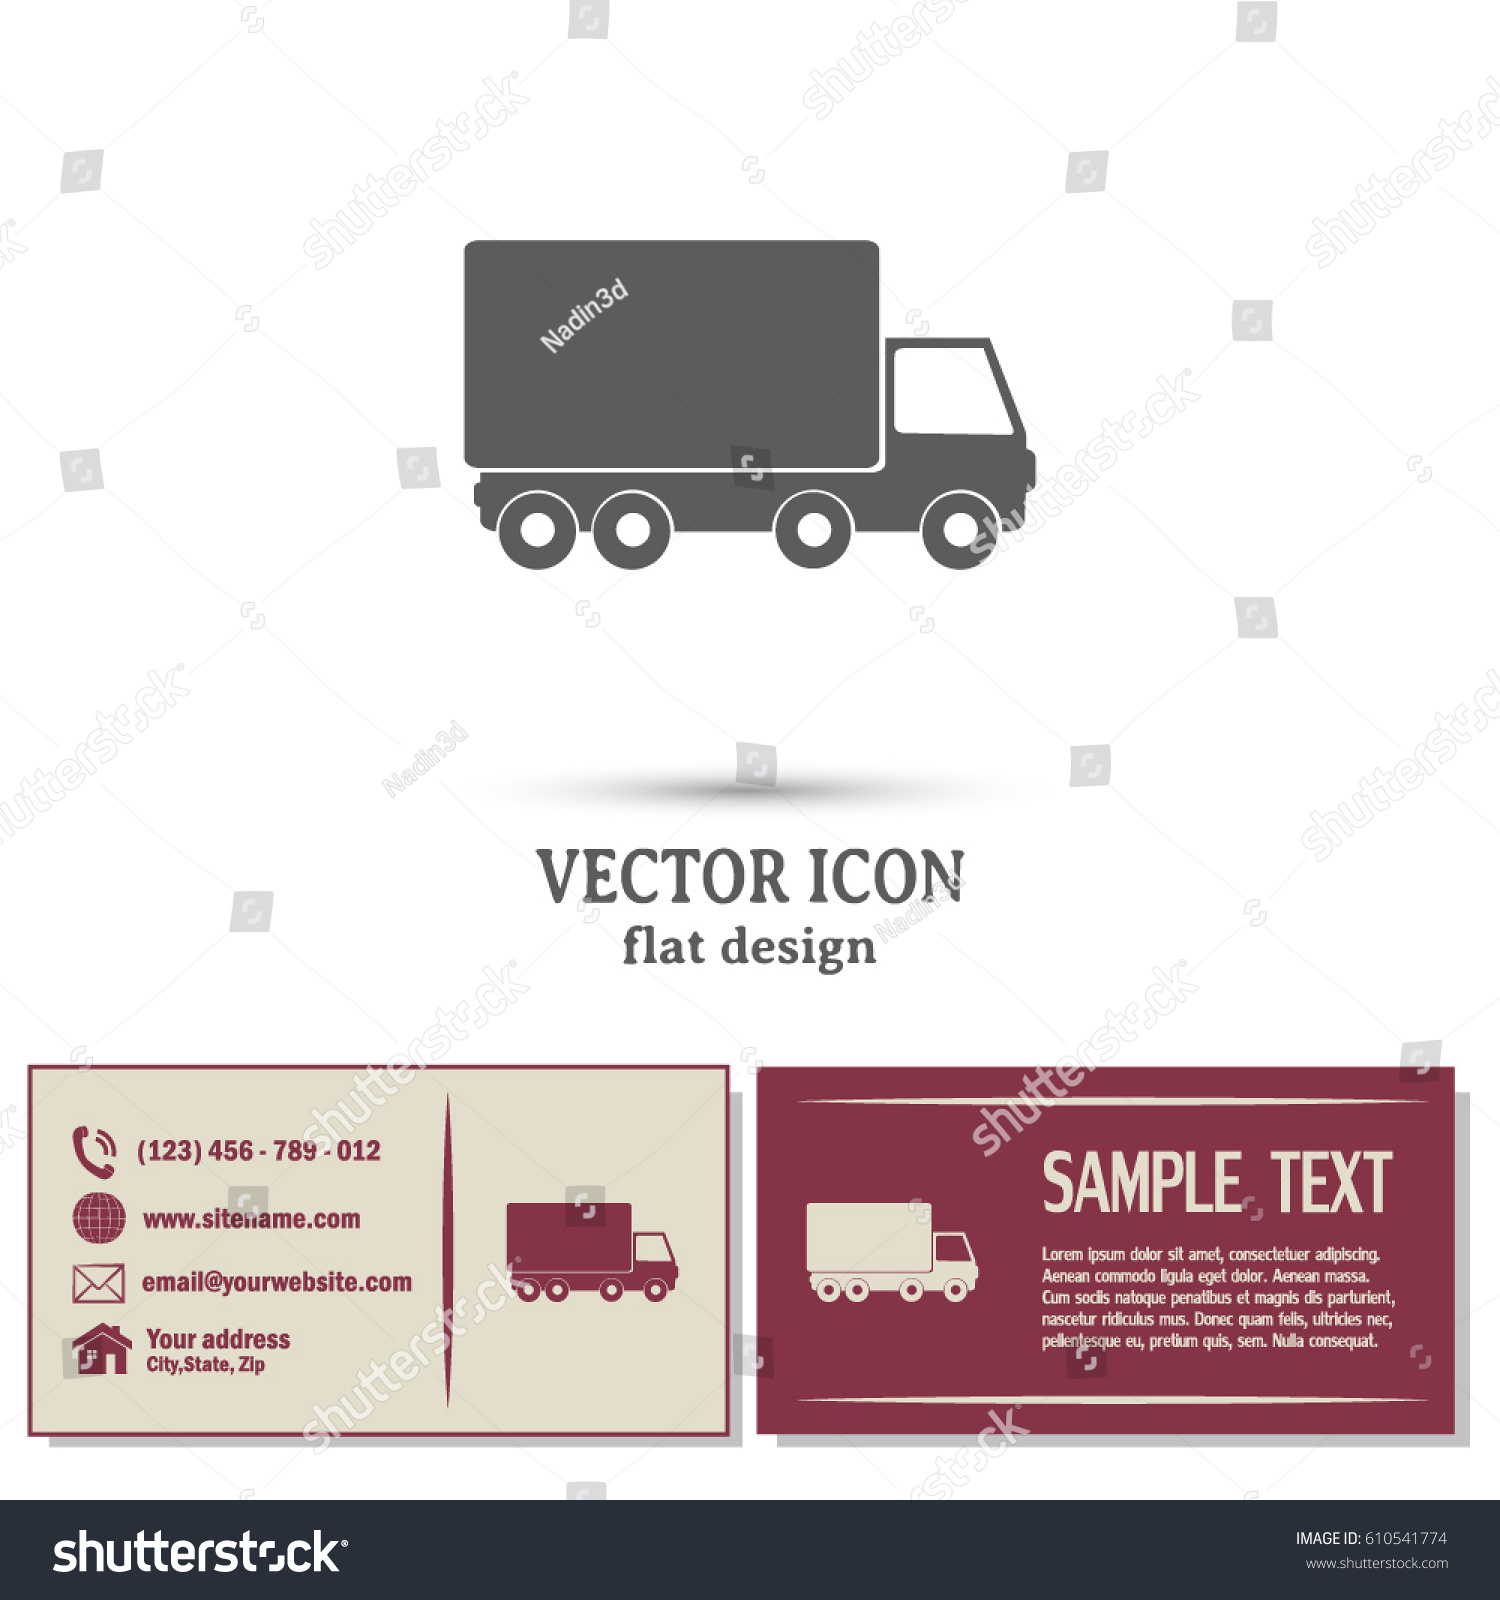 Business Cards Designvector Illustration Truck Stock Vector ...